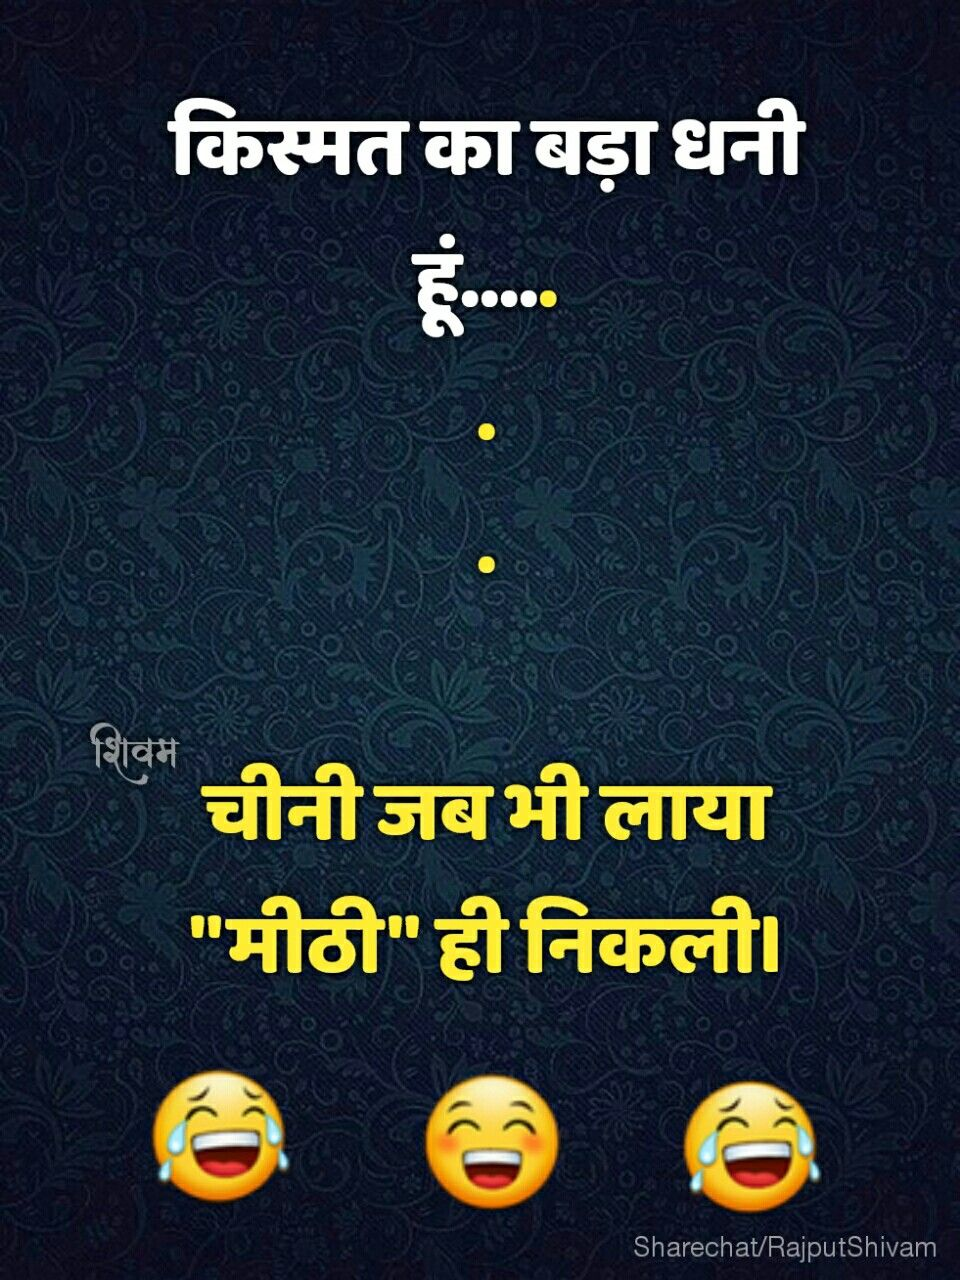 Joke in hindi (With images) Some funny jokes